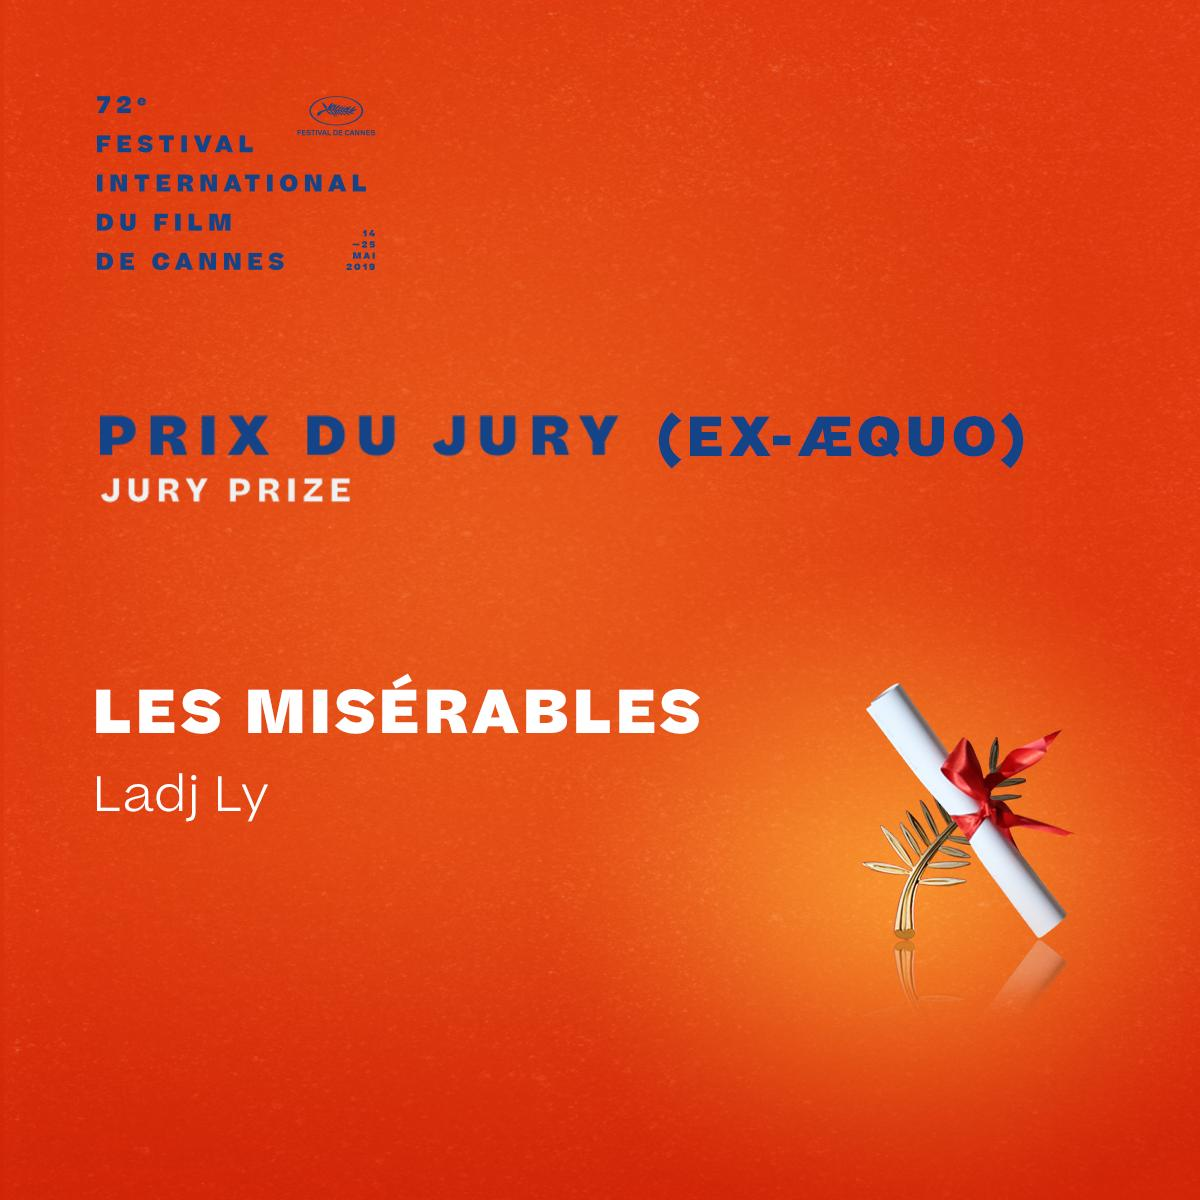 And the Jury Prize winner ex-æquo is… #LesMisérables by Ladj Ly  #Cannes2019 #Awards https://t.co/OcKorfMeJ3